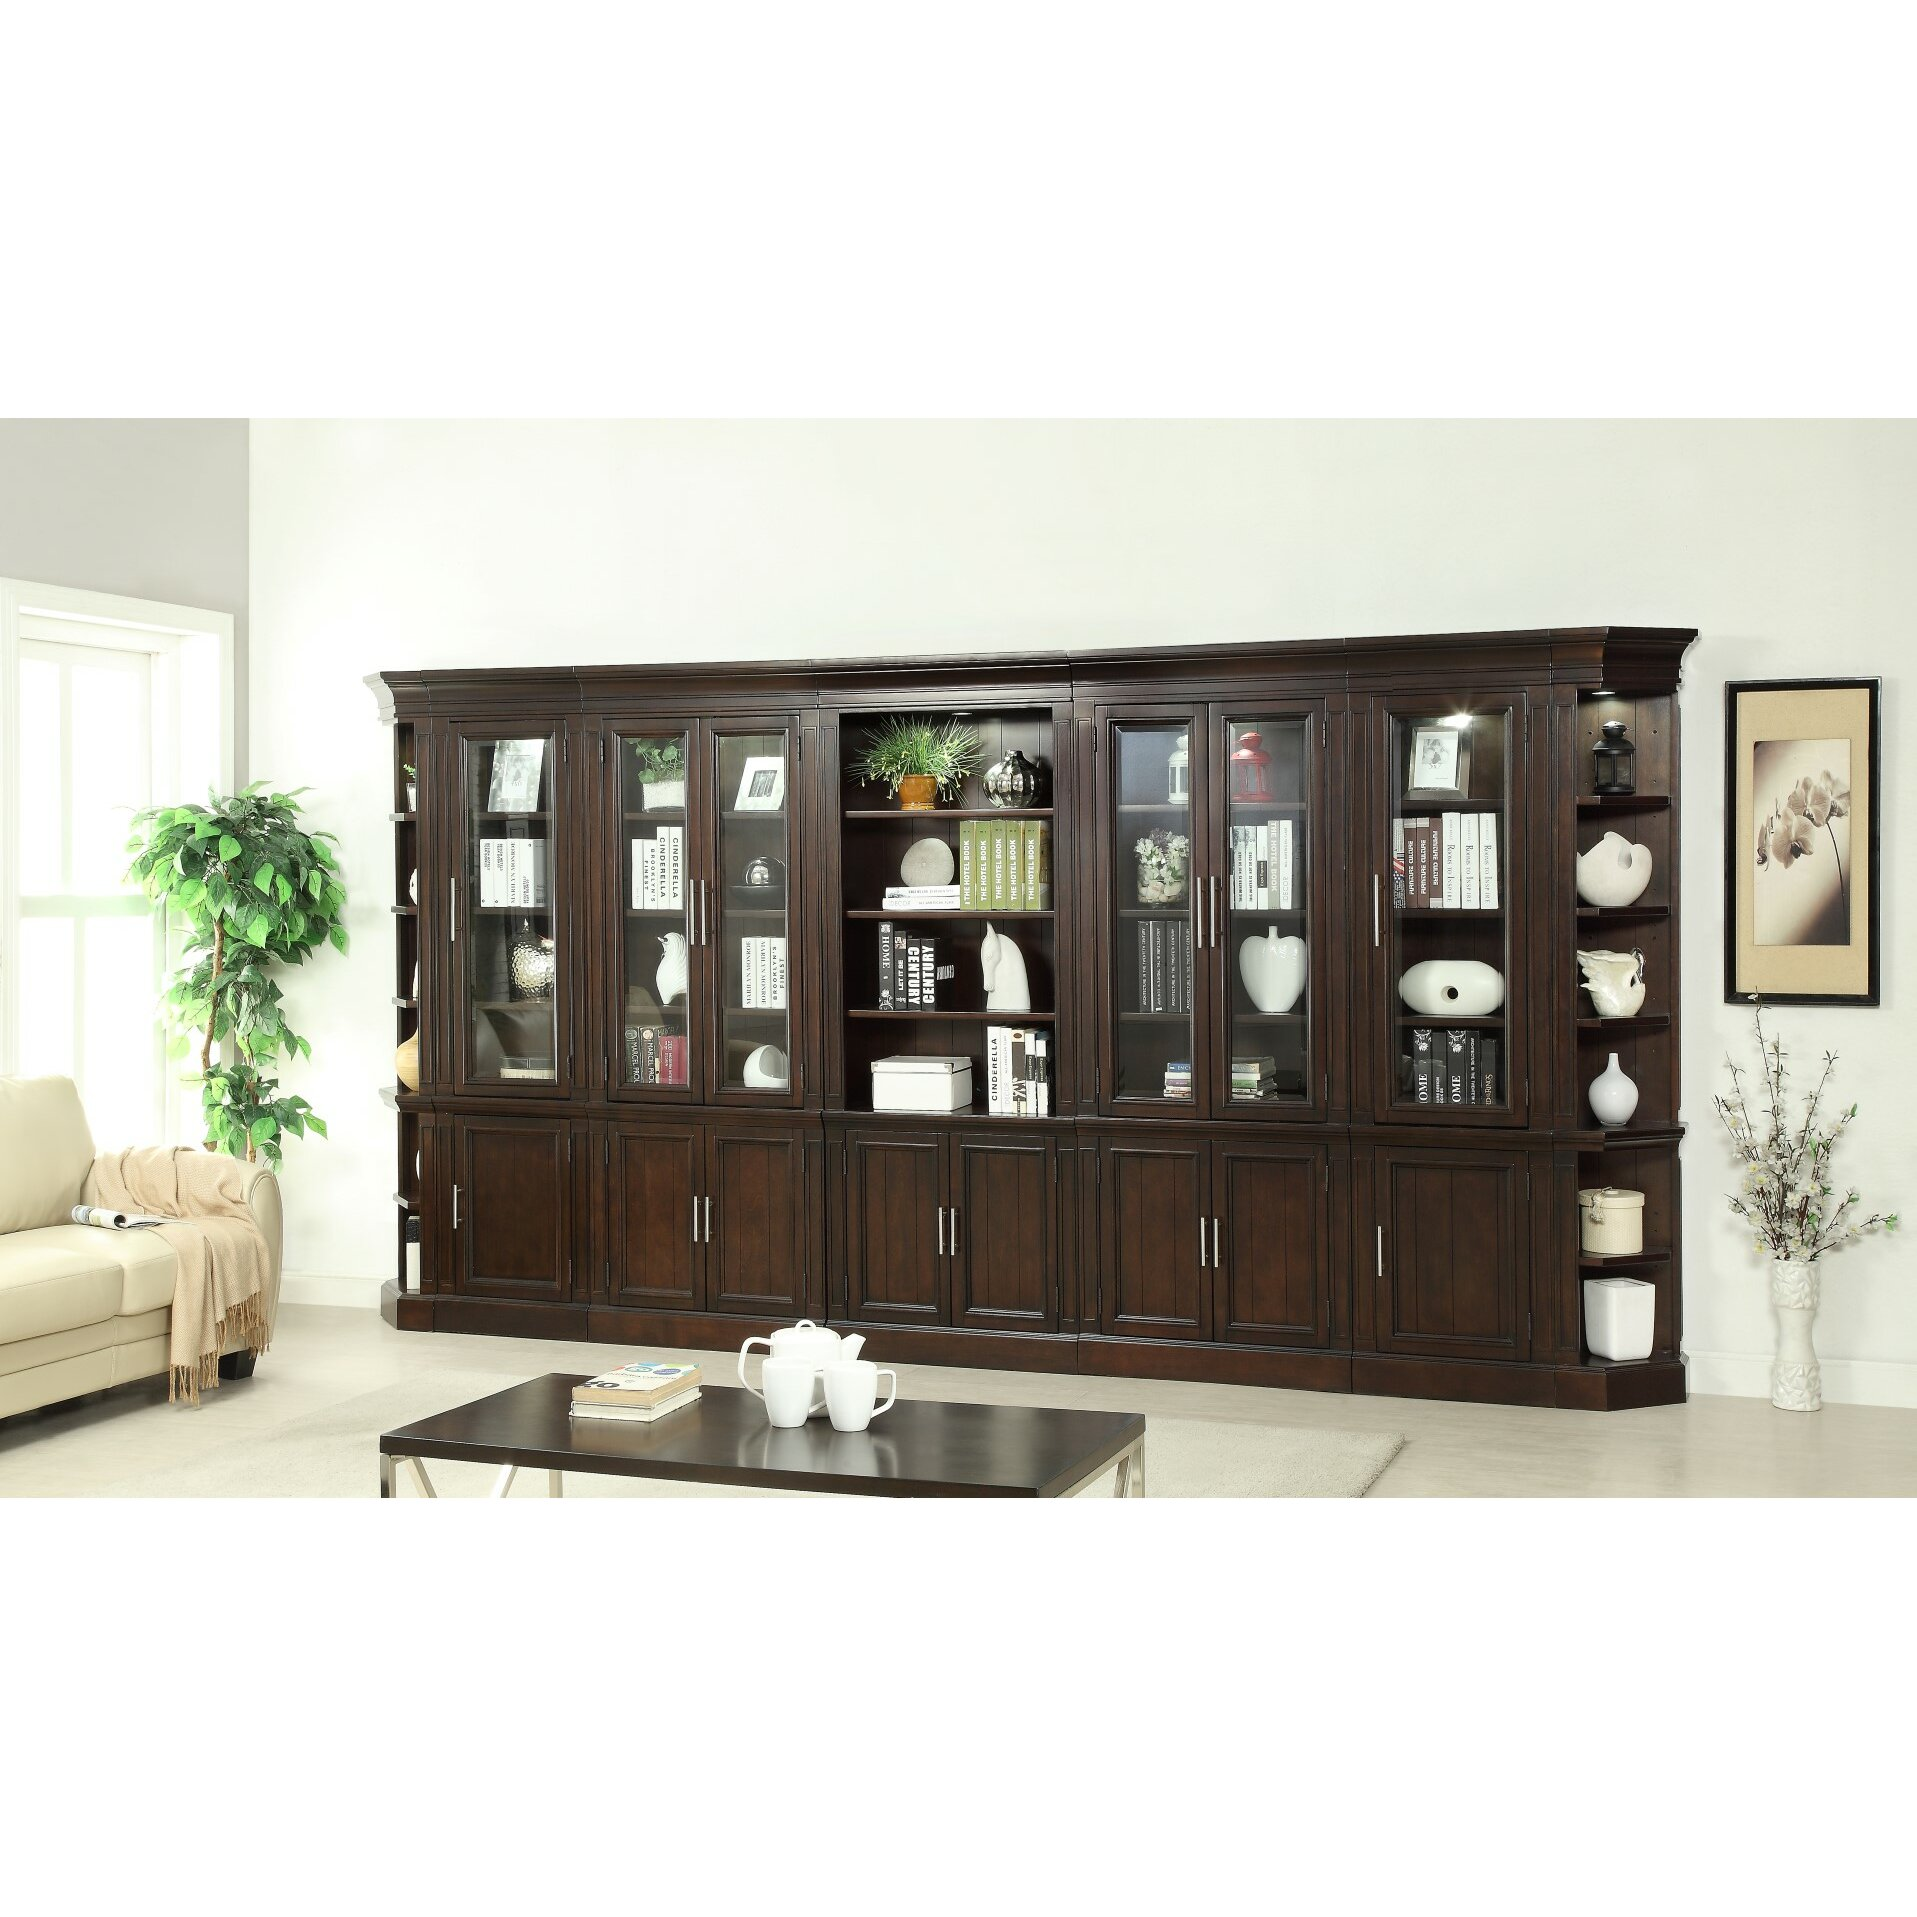 Stanford Bookcase Wall Wayfair